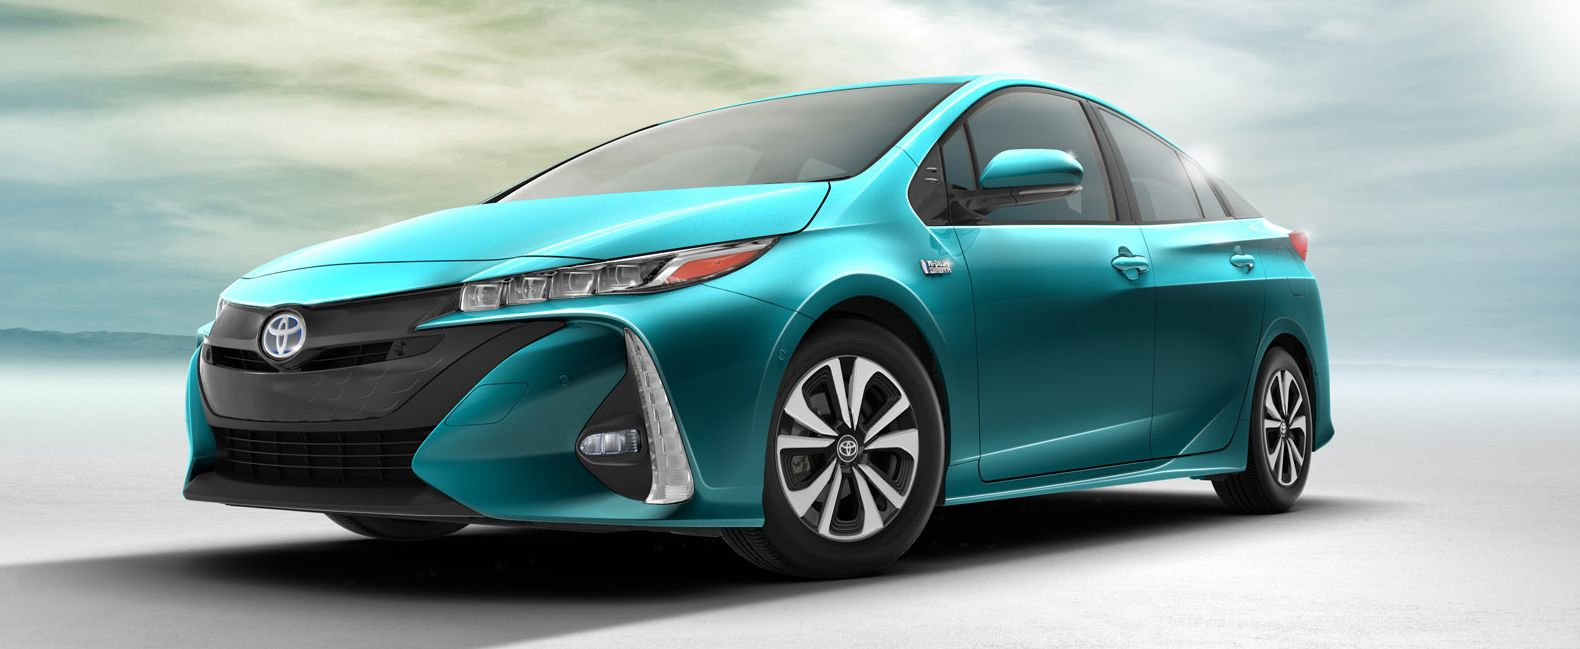 Toyota s new prius prime has the world s highest mpge for a plug in hybrid